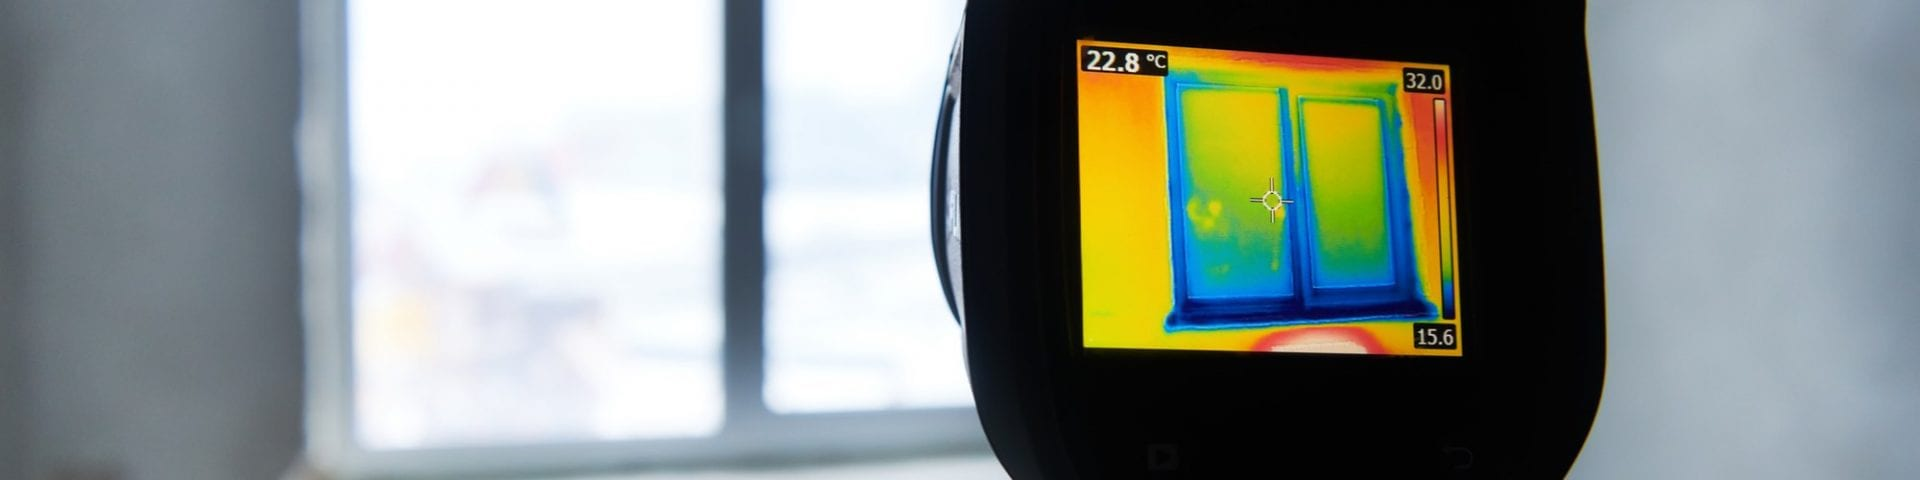 Using an Infrared Camera to Detect Moisture and Mold Problems